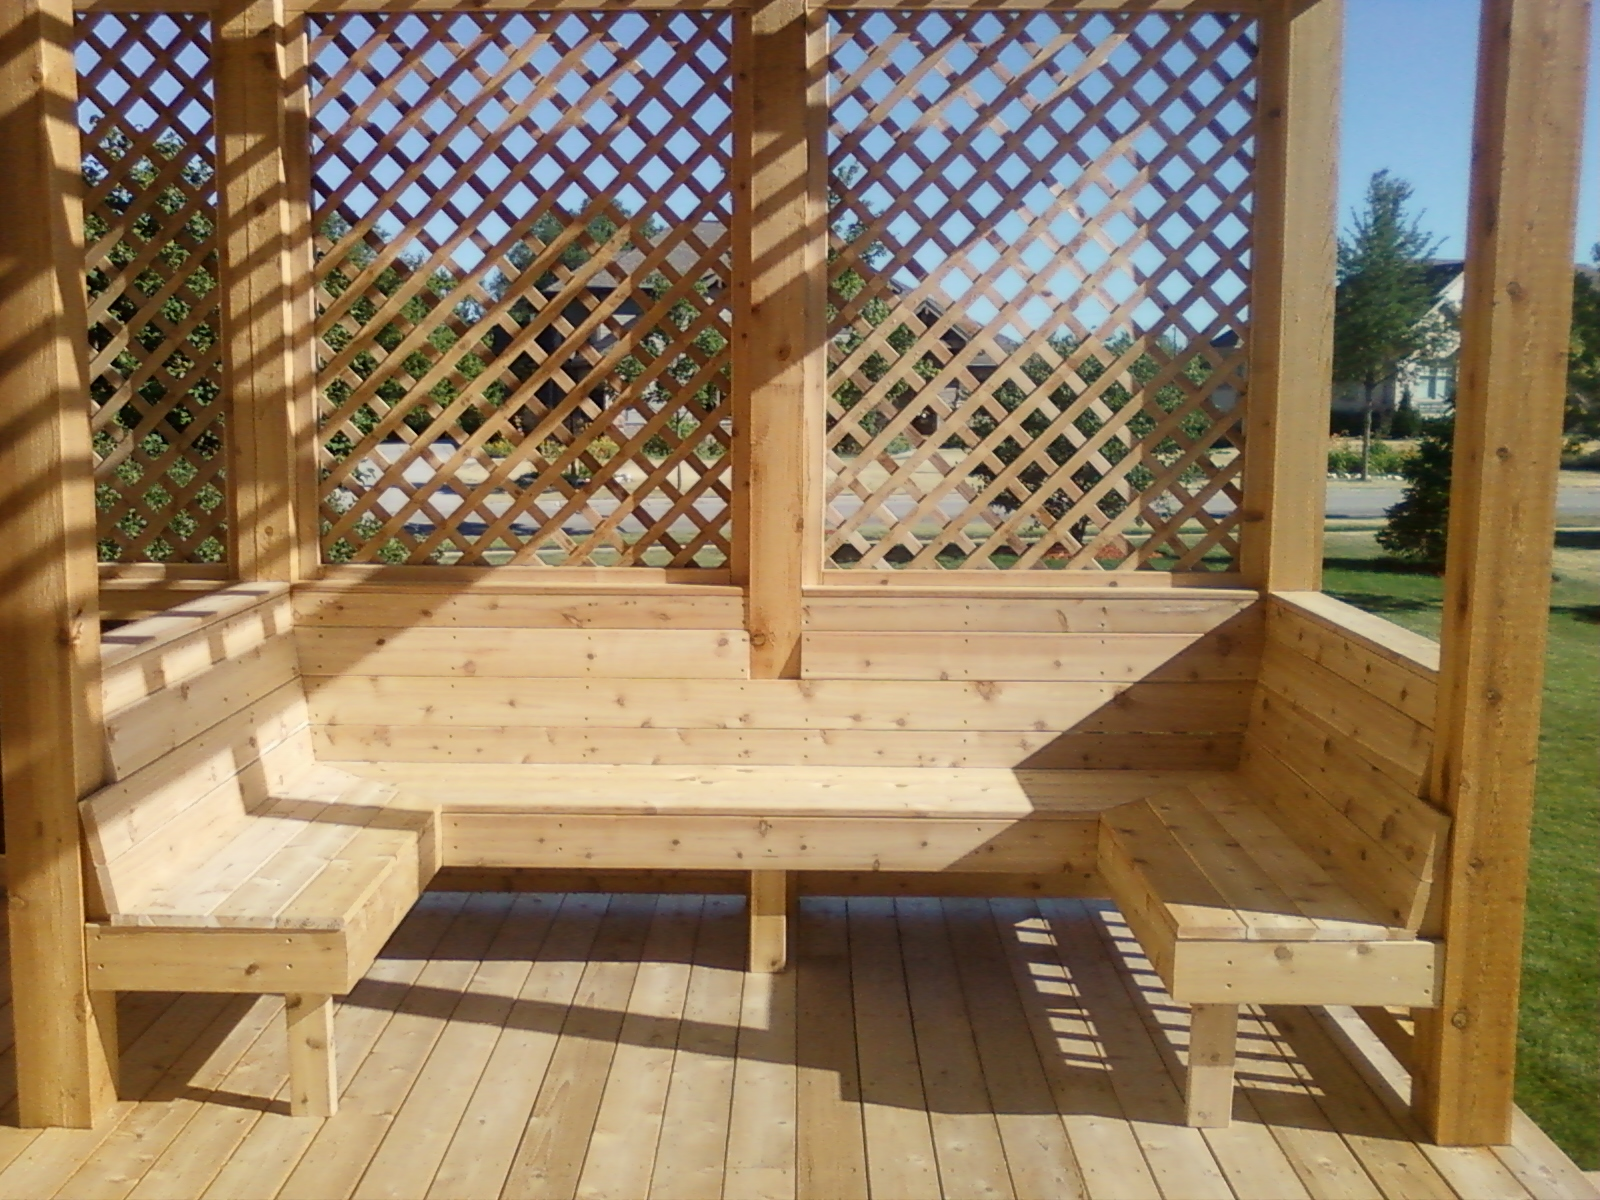 built in patio furniture - terrasseenbois, Gartengerate ideen